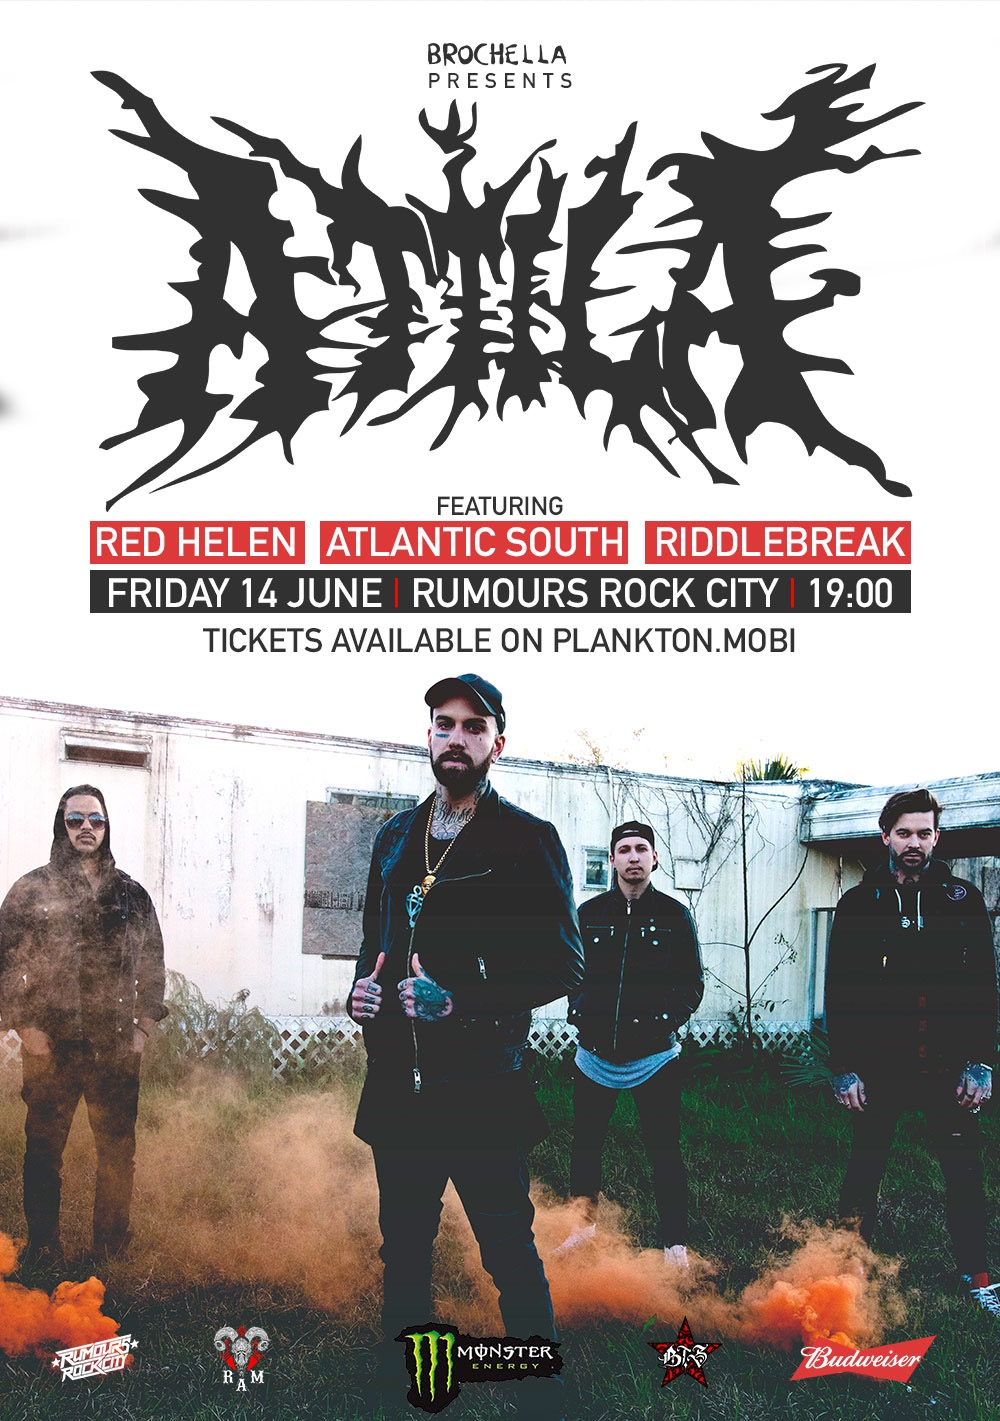 Brochella presents ATTILA live and loud for the first time in South Africa on Friday 14 June 2019 at Rumours Rock City in Johannesburg.